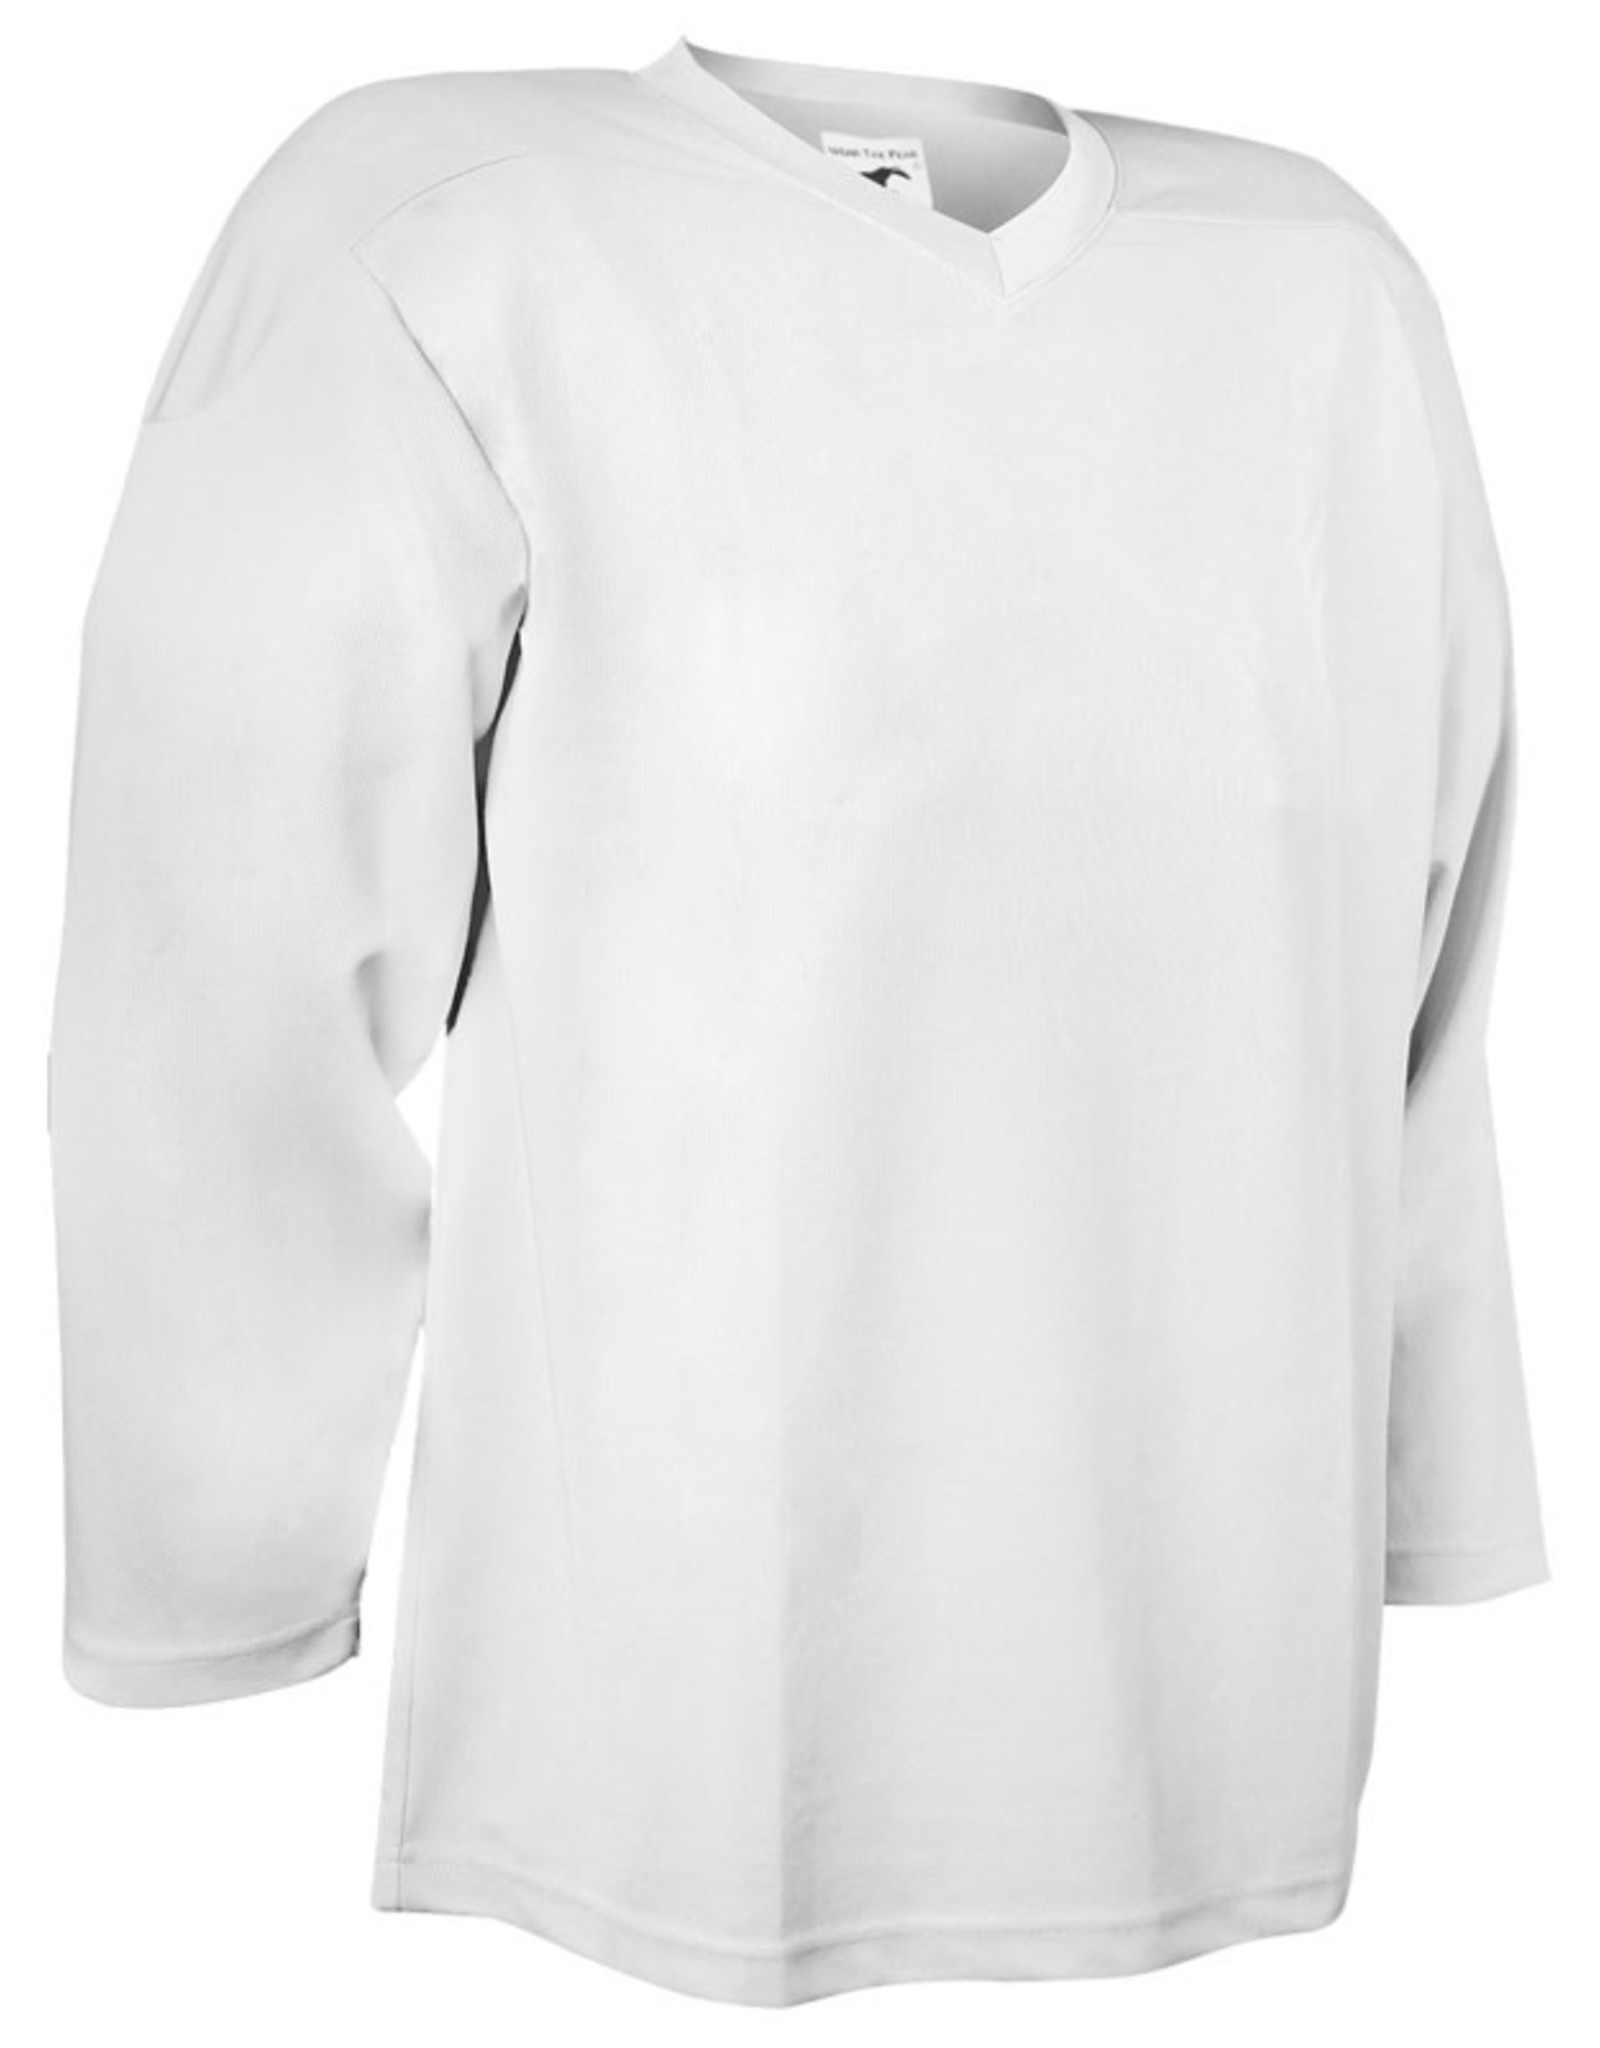 Pear Sox Pear Sox Air Mesh Practice Jersey (ADULT WHITE)